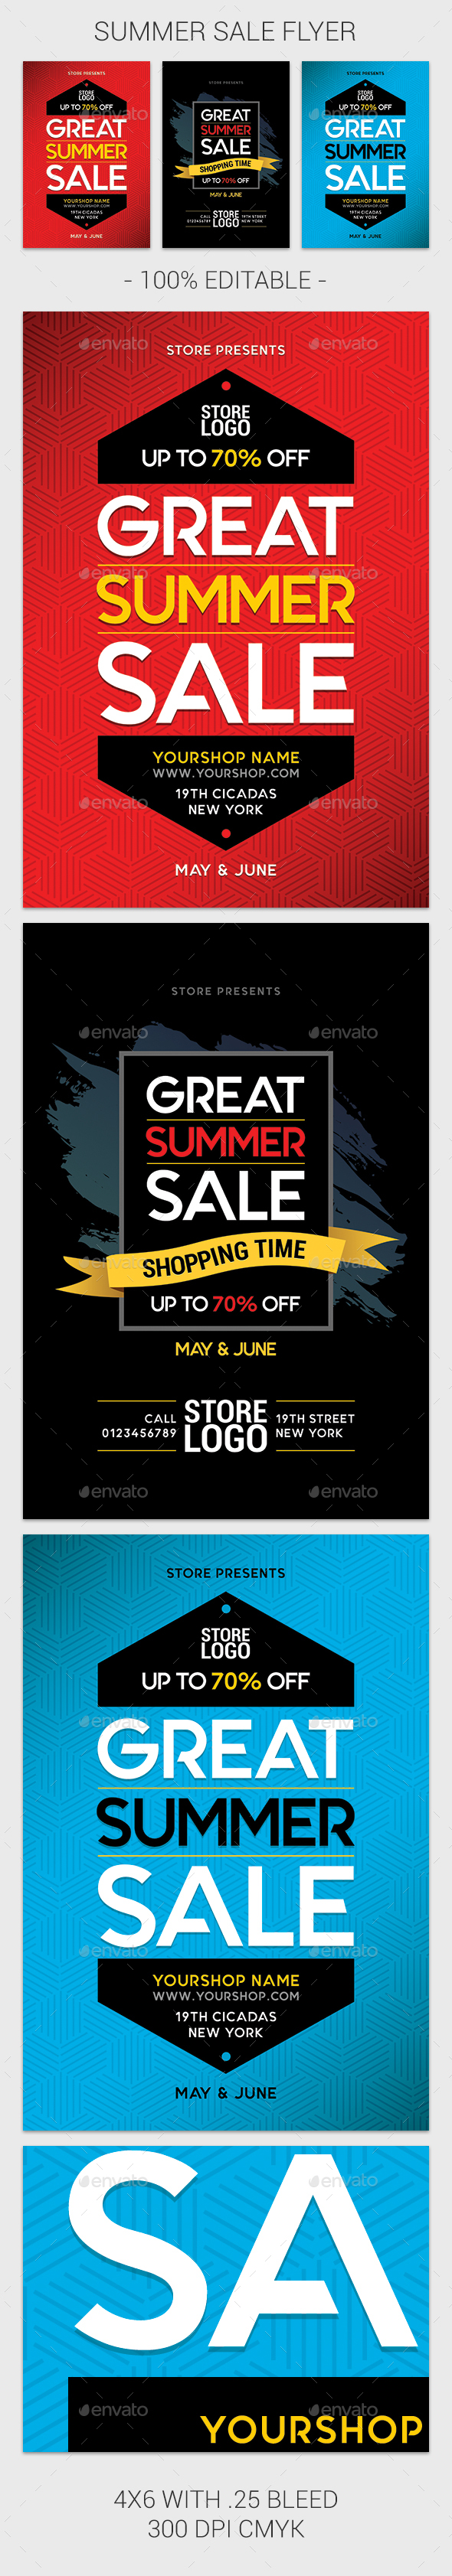 Summer Sale - Events Flyers